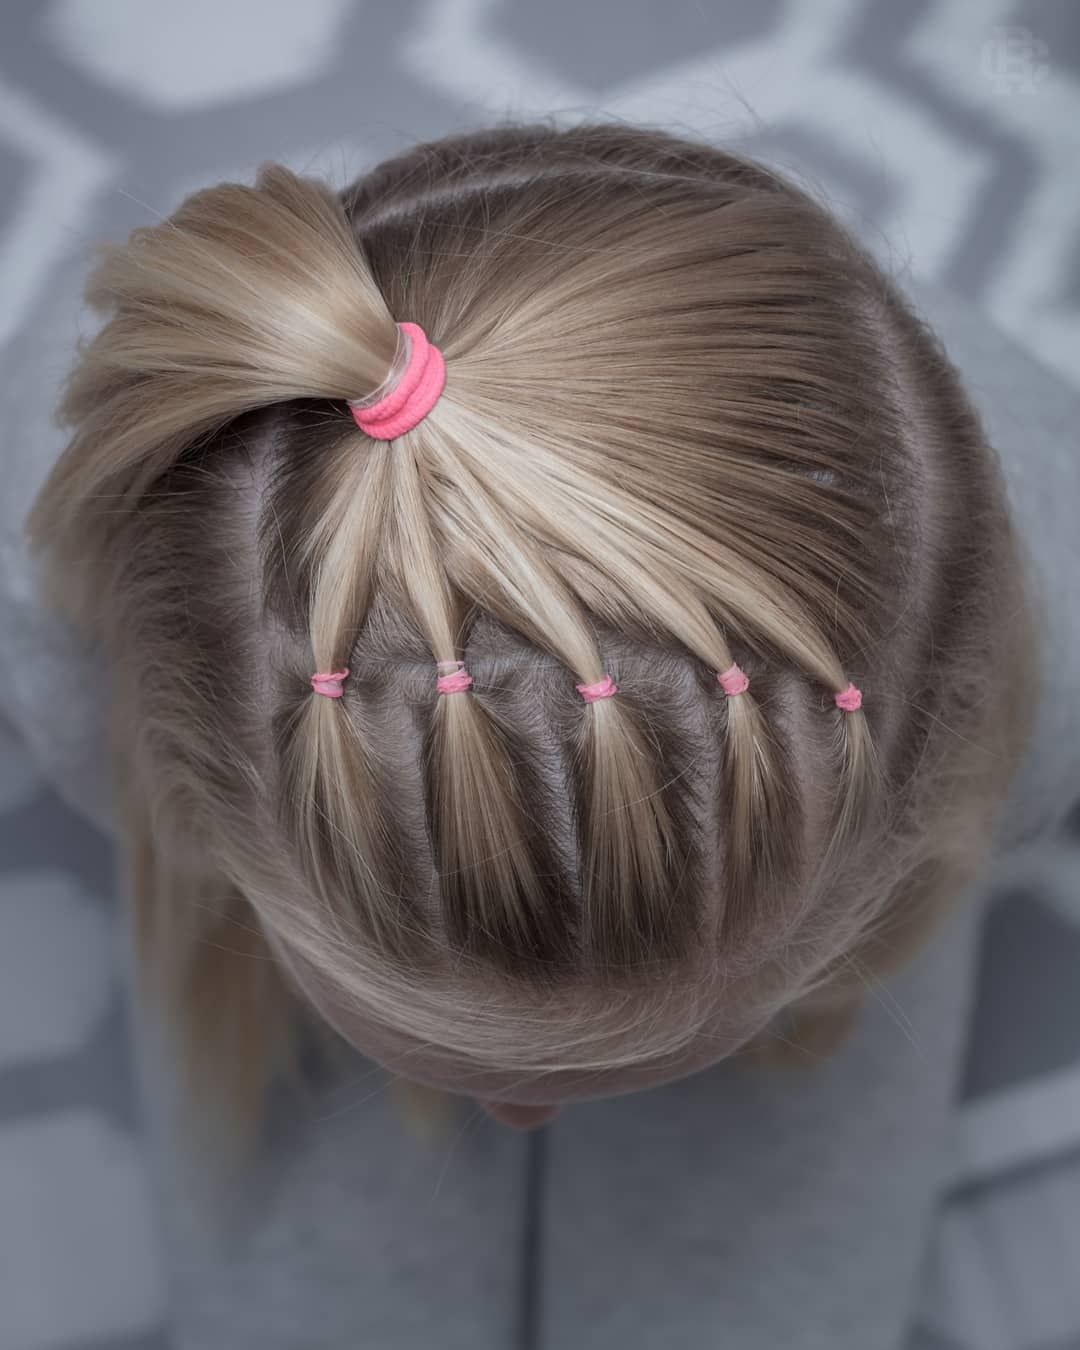 Cute hairstyle for girls taelor in pinterest hair styles